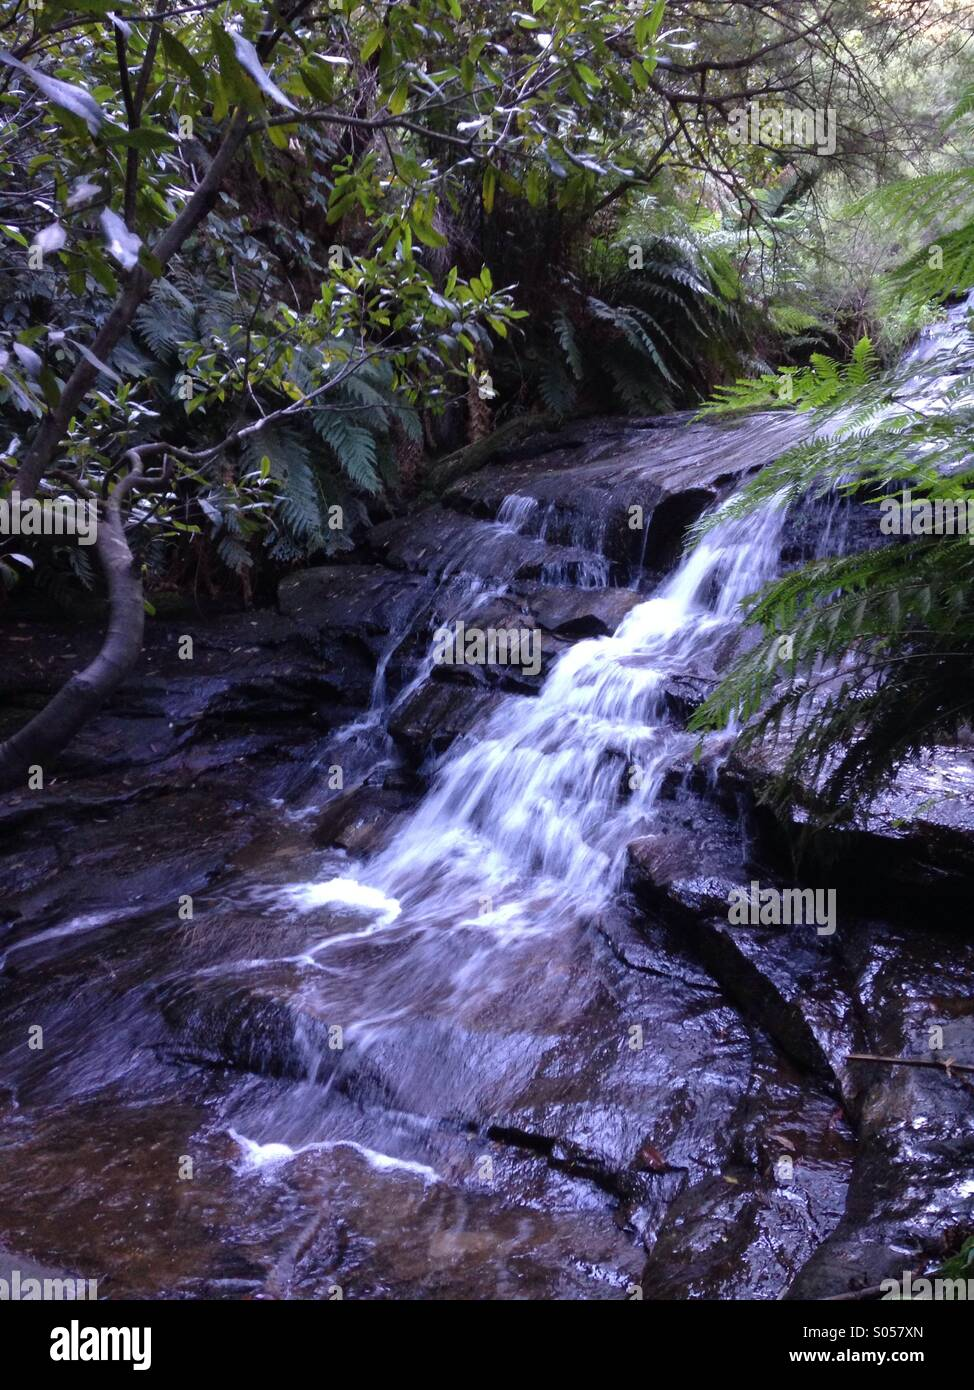 A fast flowing waterfall surrounded by nature at the Leura Cascades, New South Wales, Australia. - Stock Image